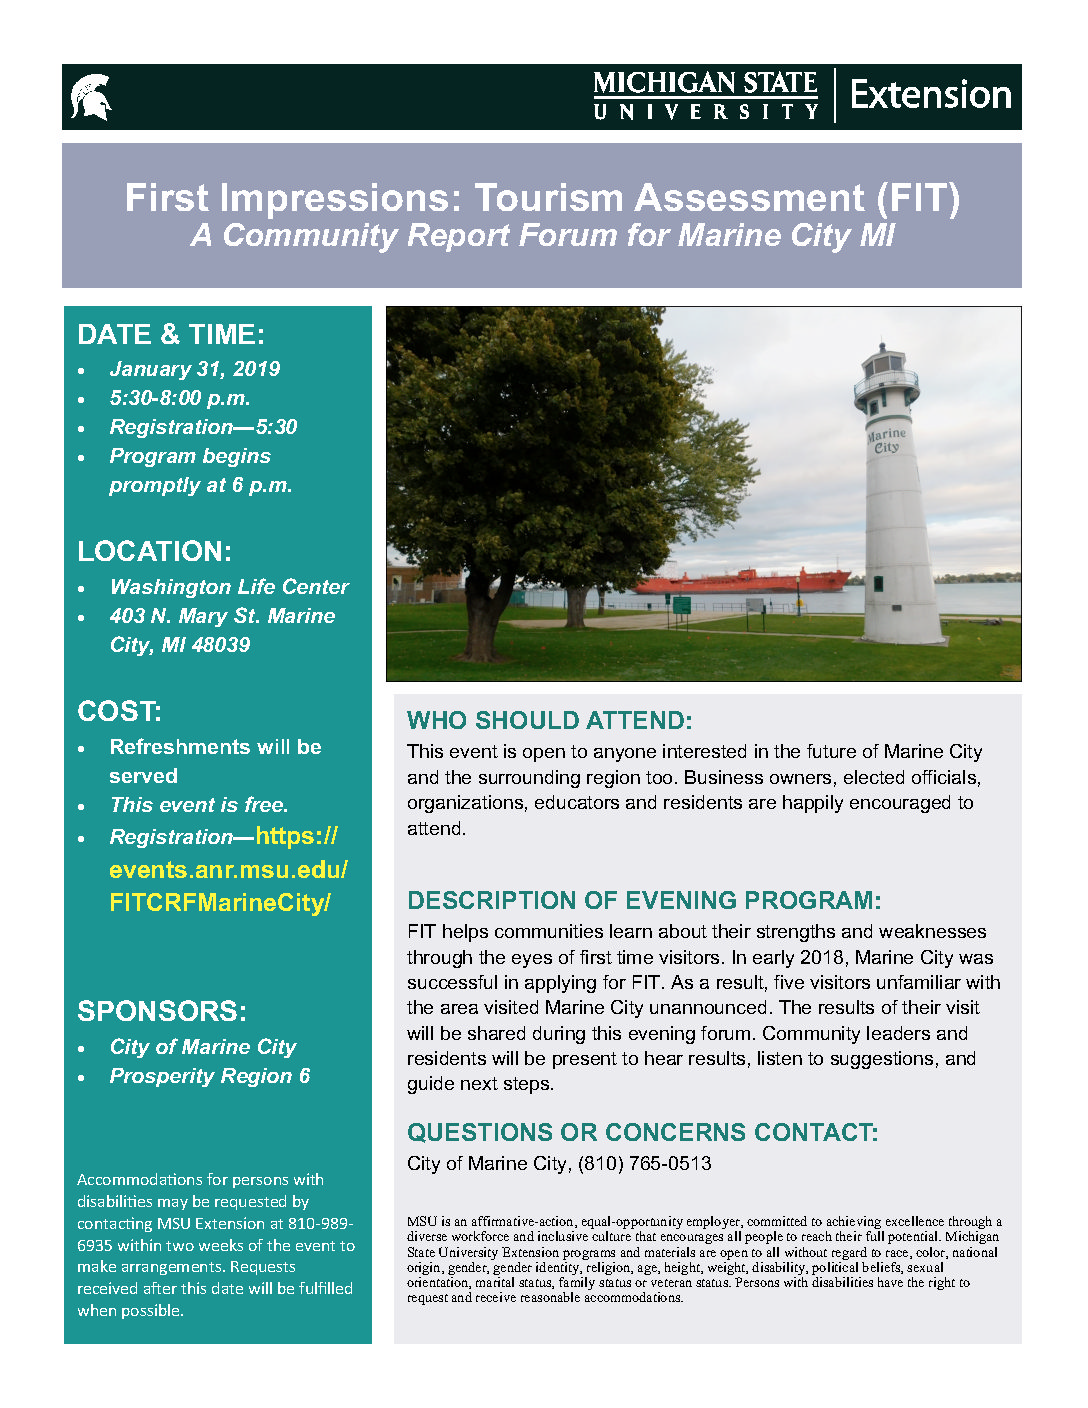 Marine City Will Receive Tourism Results at FIT Community Report Forum